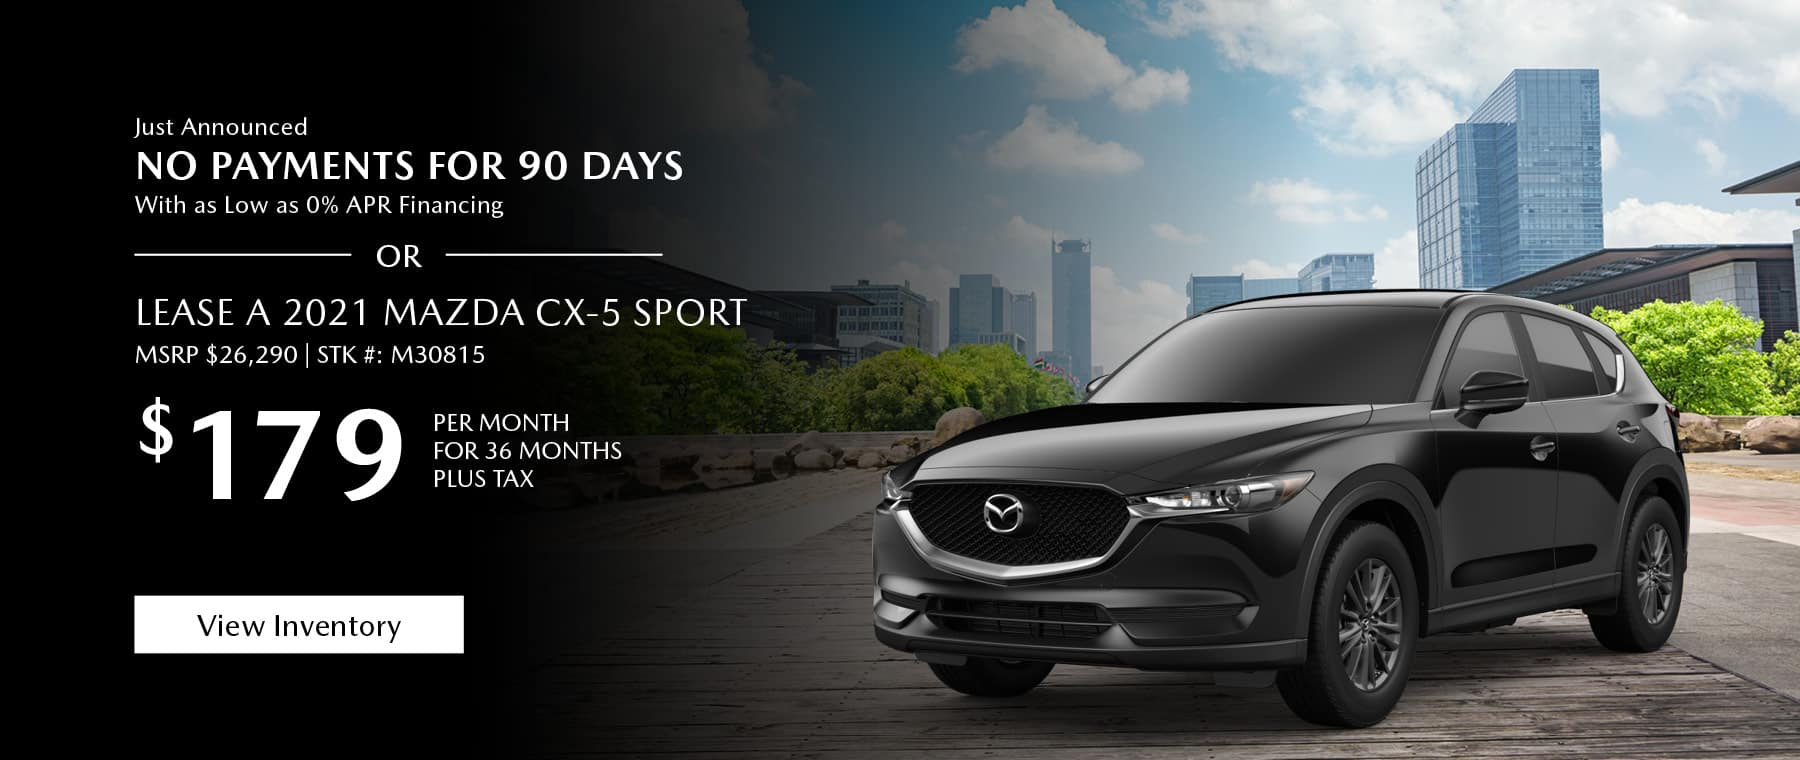 Just Announced, No payments for 90 days with as low as %0 APR financing, or lease the 2021 Mazda CX-5 for $179 per month, plus tax for 36 months. Click or tap here to view our inventory.